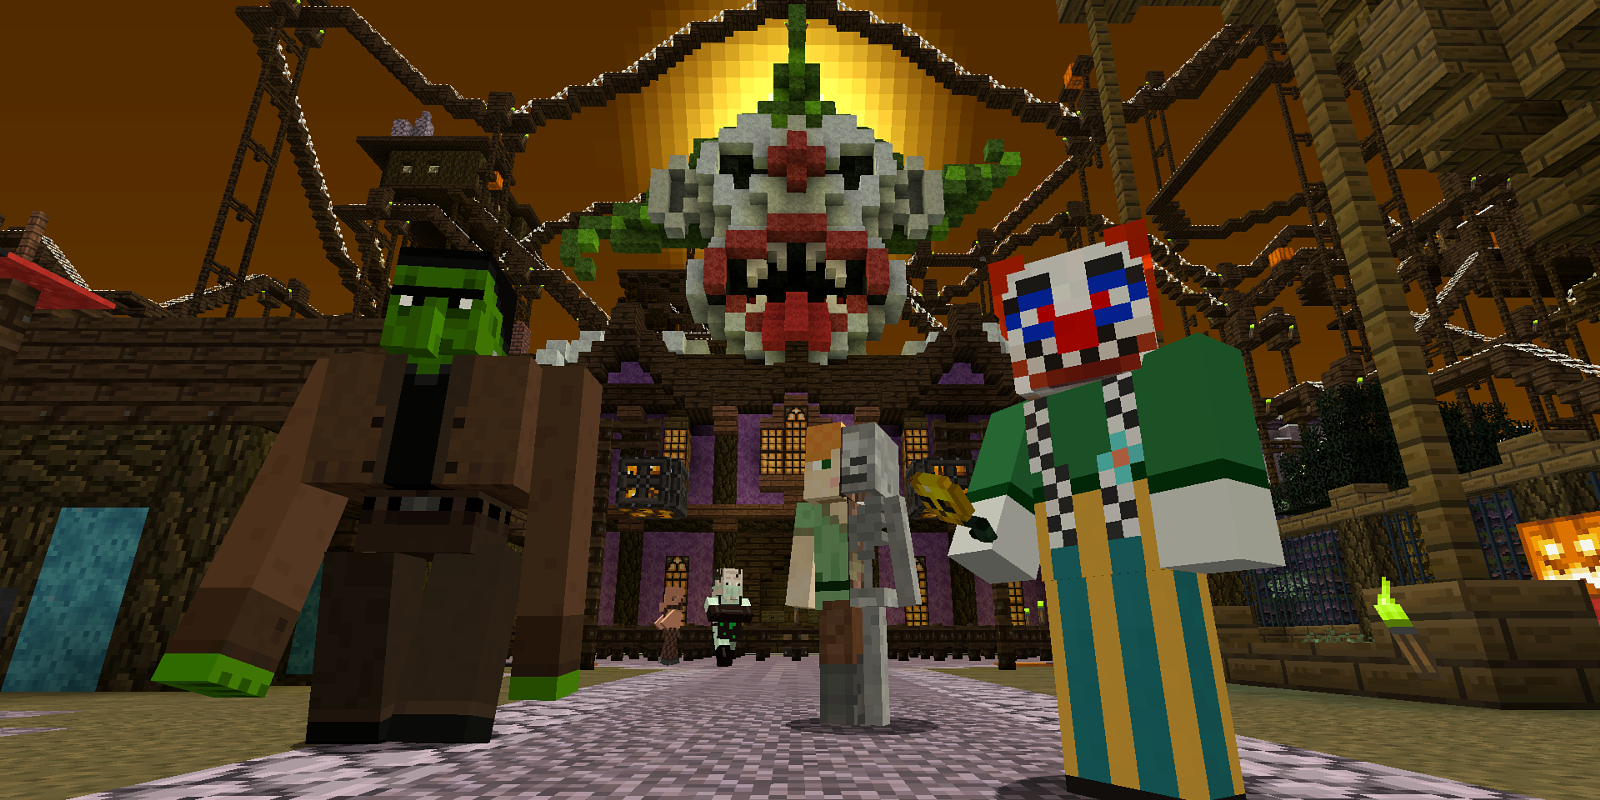 Minecraft is getting new Halloween-themed DLC this week